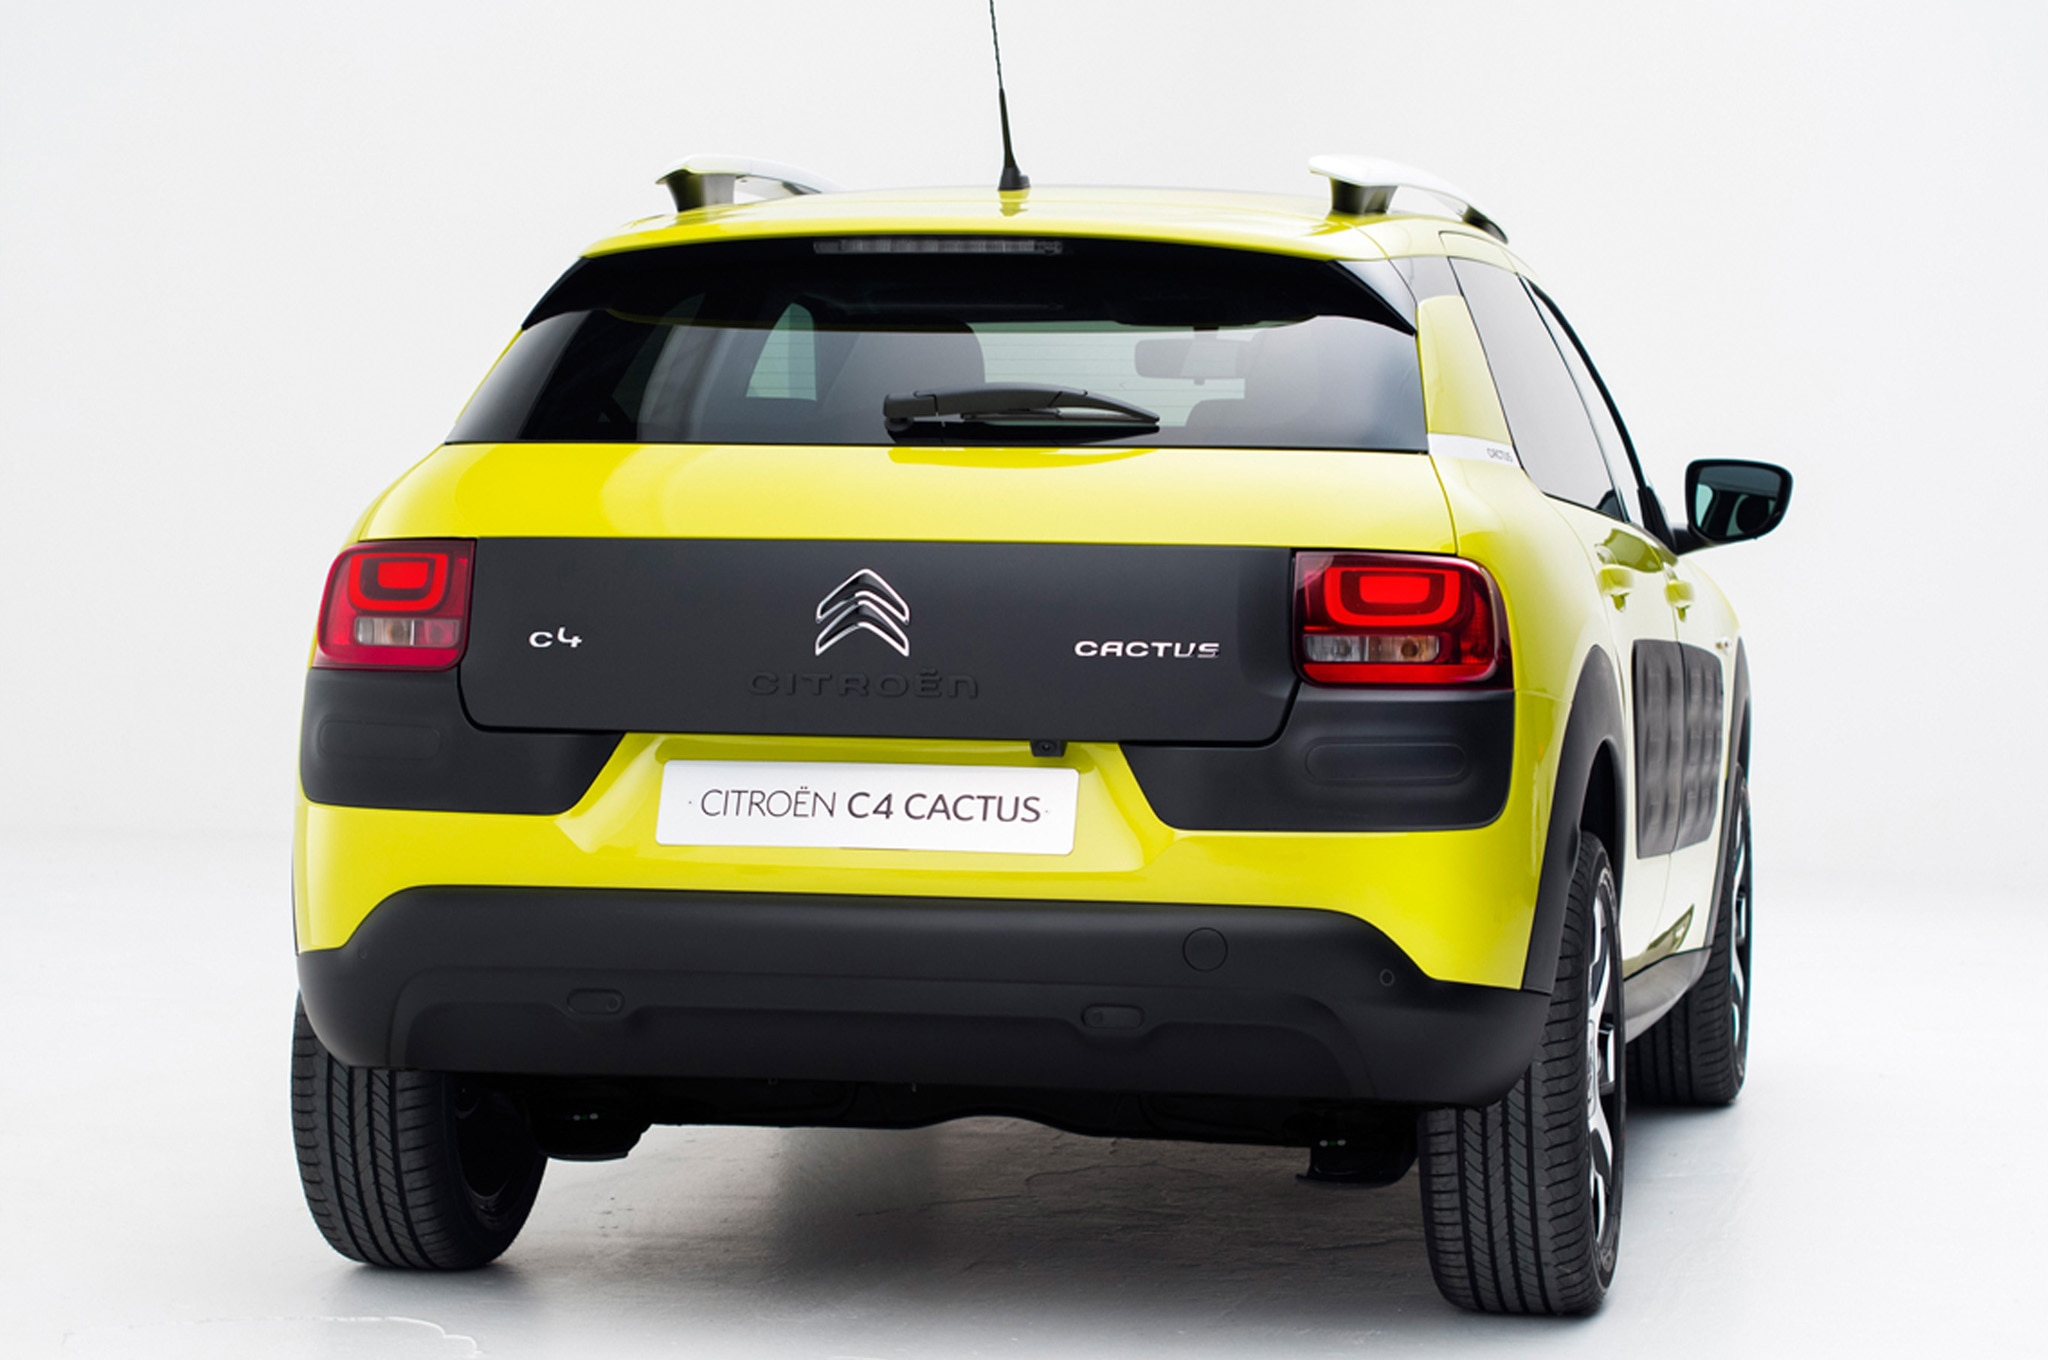 citroen c4 cactus revealed with funky style and technology. Black Bedroom Furniture Sets. Home Design Ideas